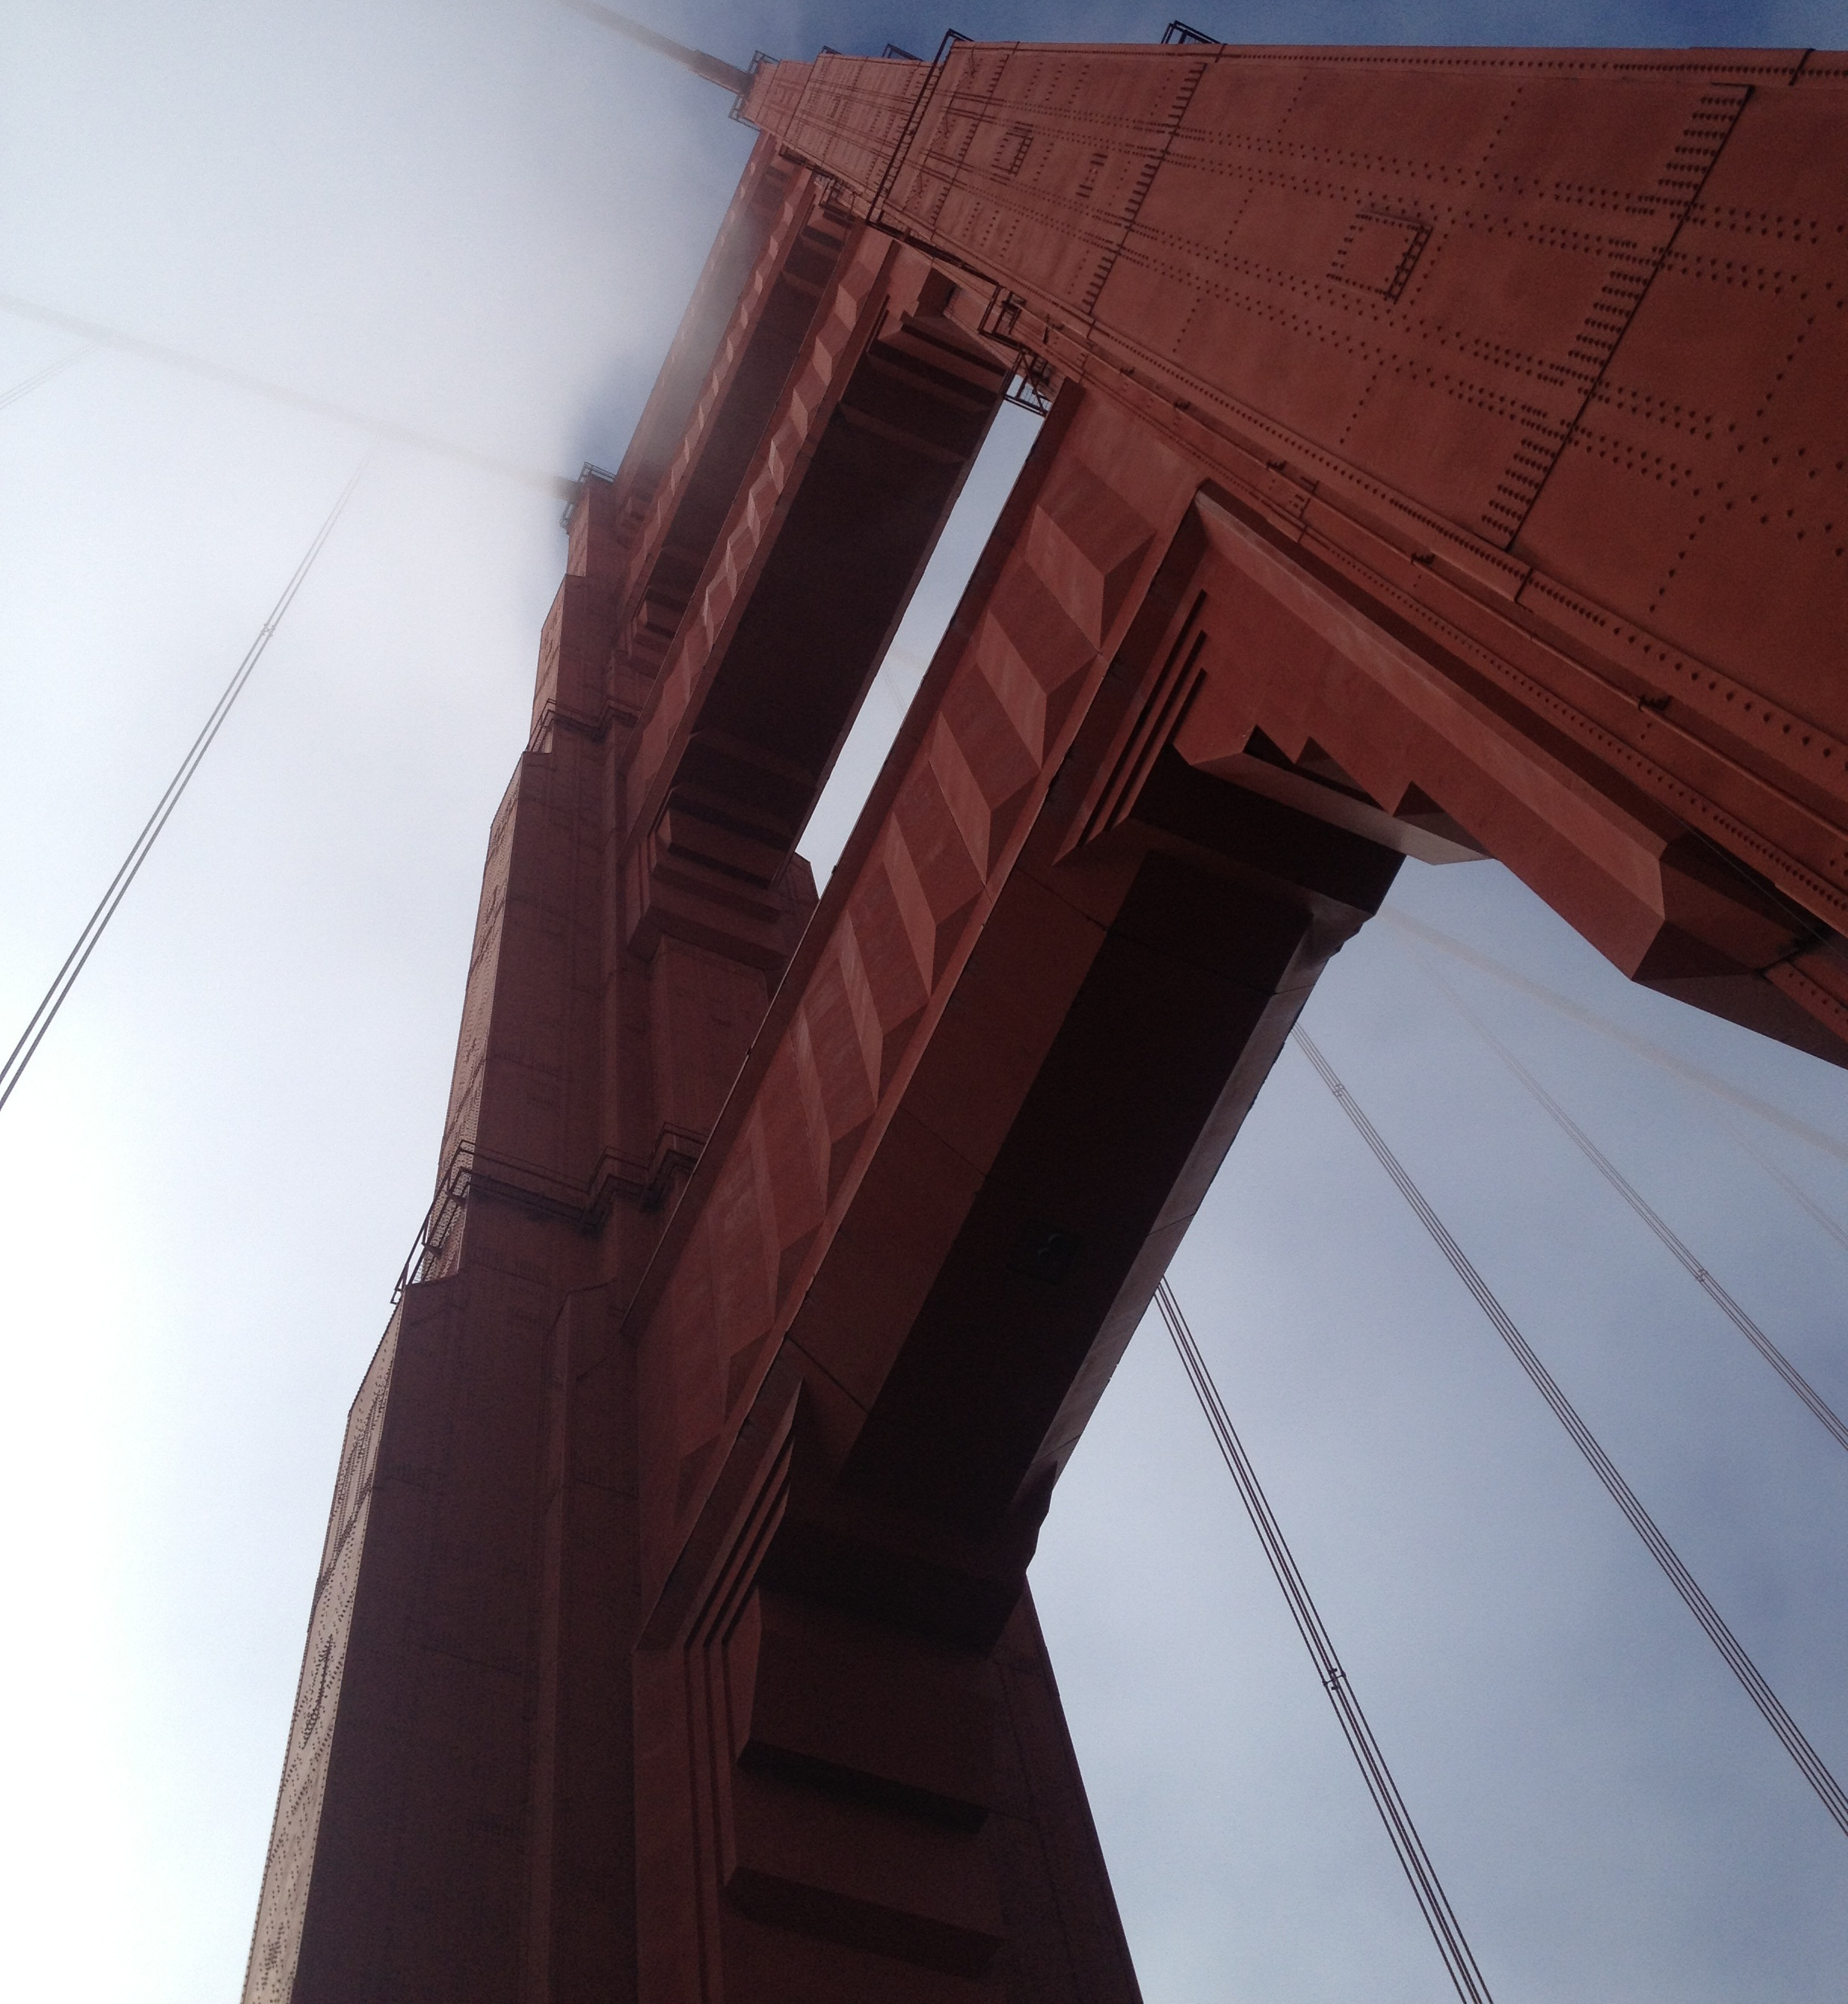 Art Deco in the usual summer fog - Golden Gate